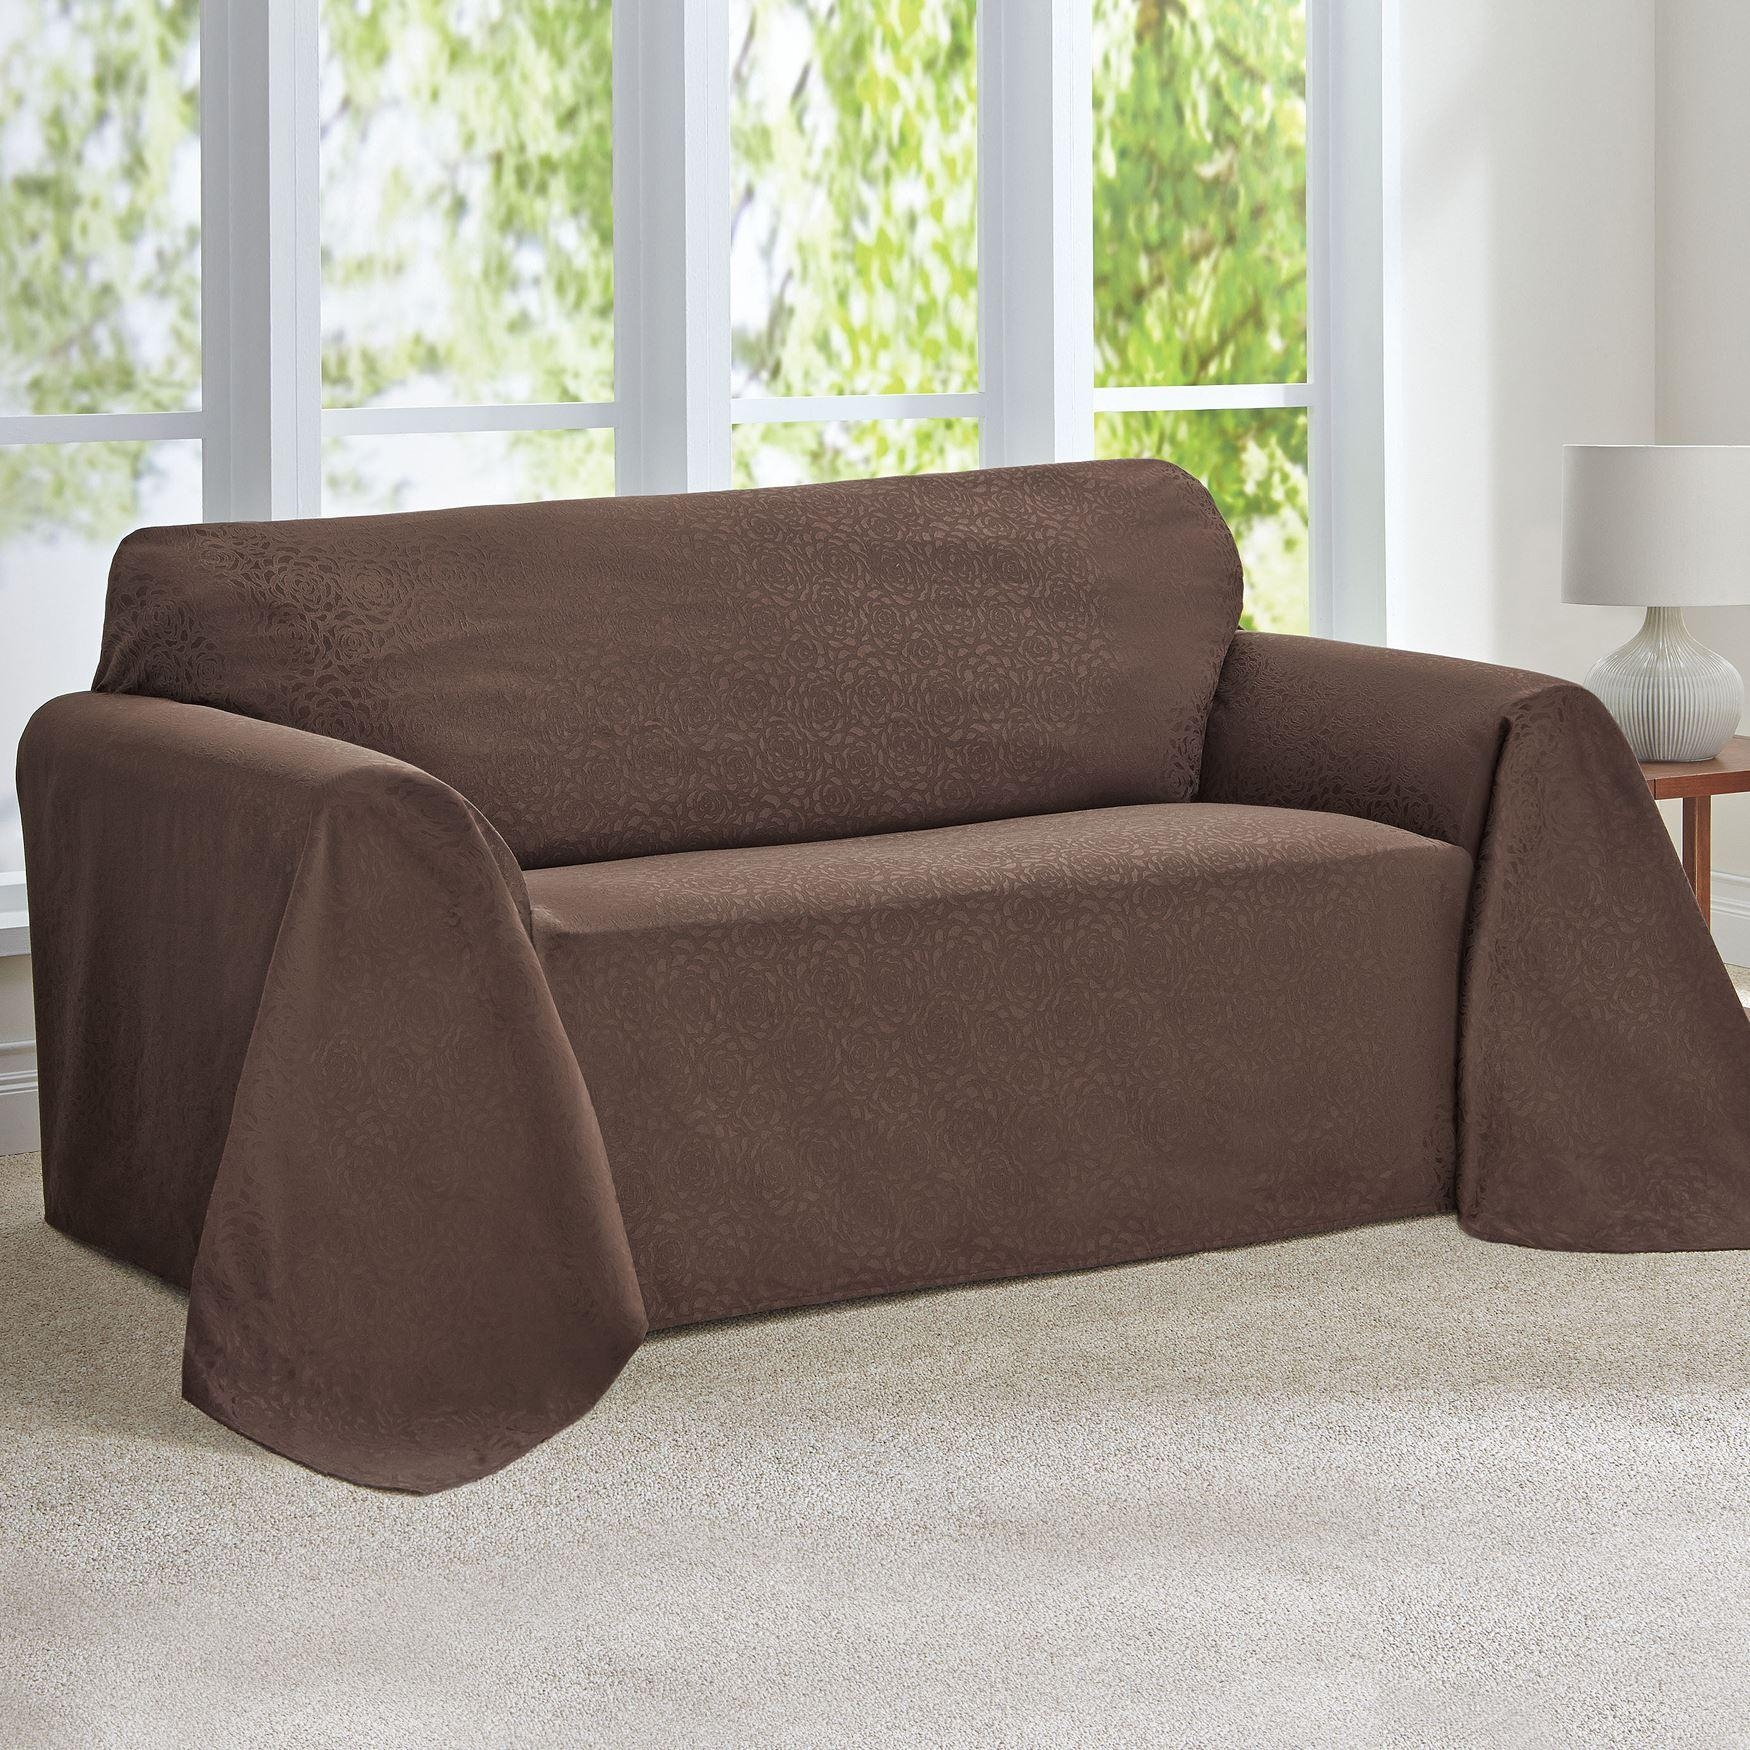 Living Room: Sofa Protector | Couch Covers Target | Leather Sofa Within Black Sofa Slipcovers (Image 16 of 20)